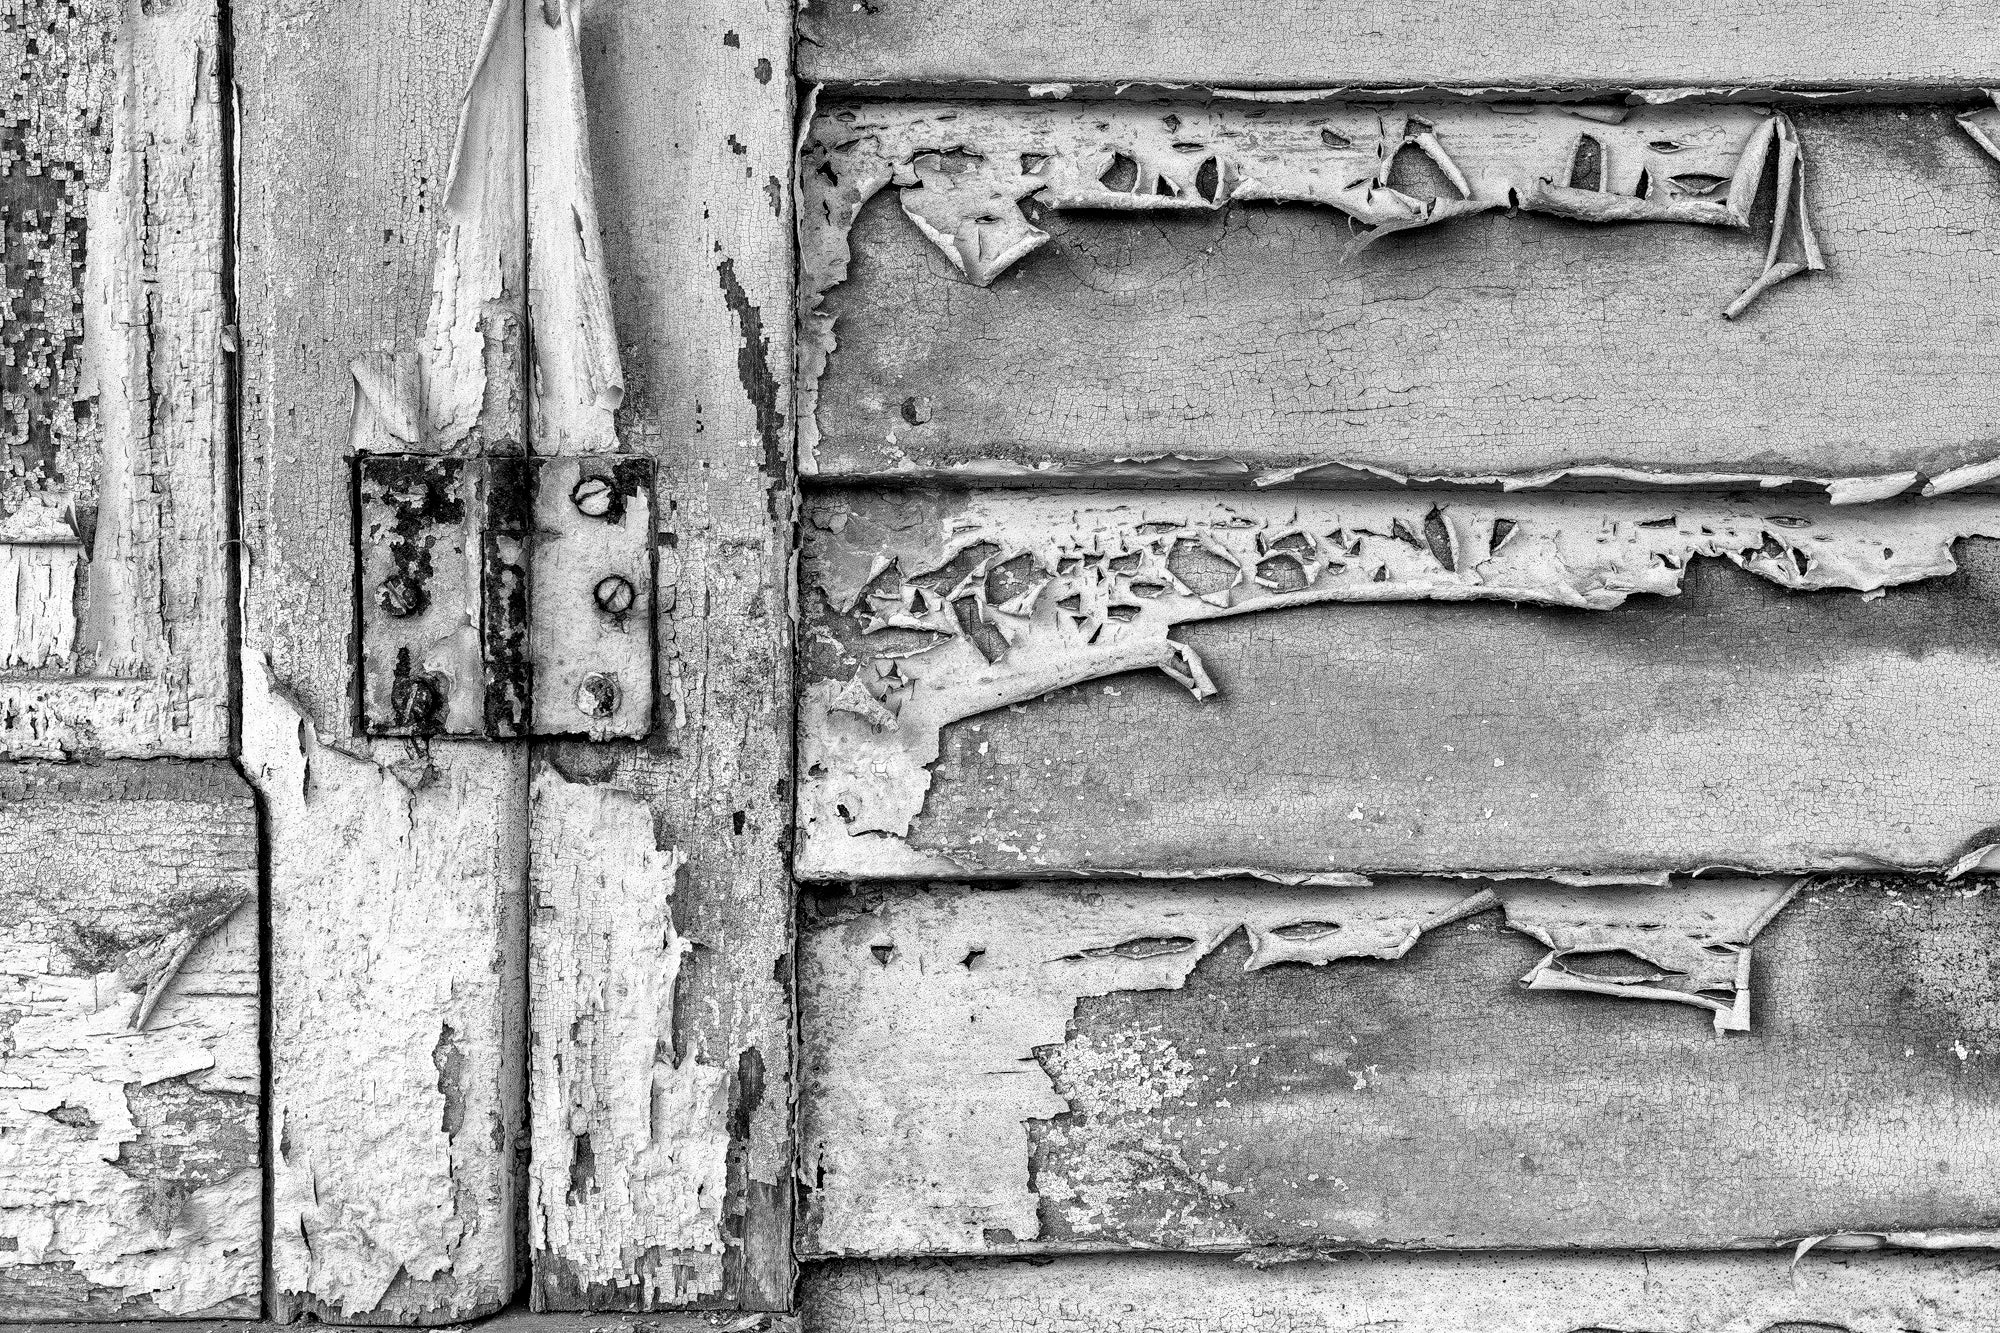 Peeling Paint in an Old Mercantile Store: Black and White Photograph by Keith Dotson. Click to buy a fine art print.